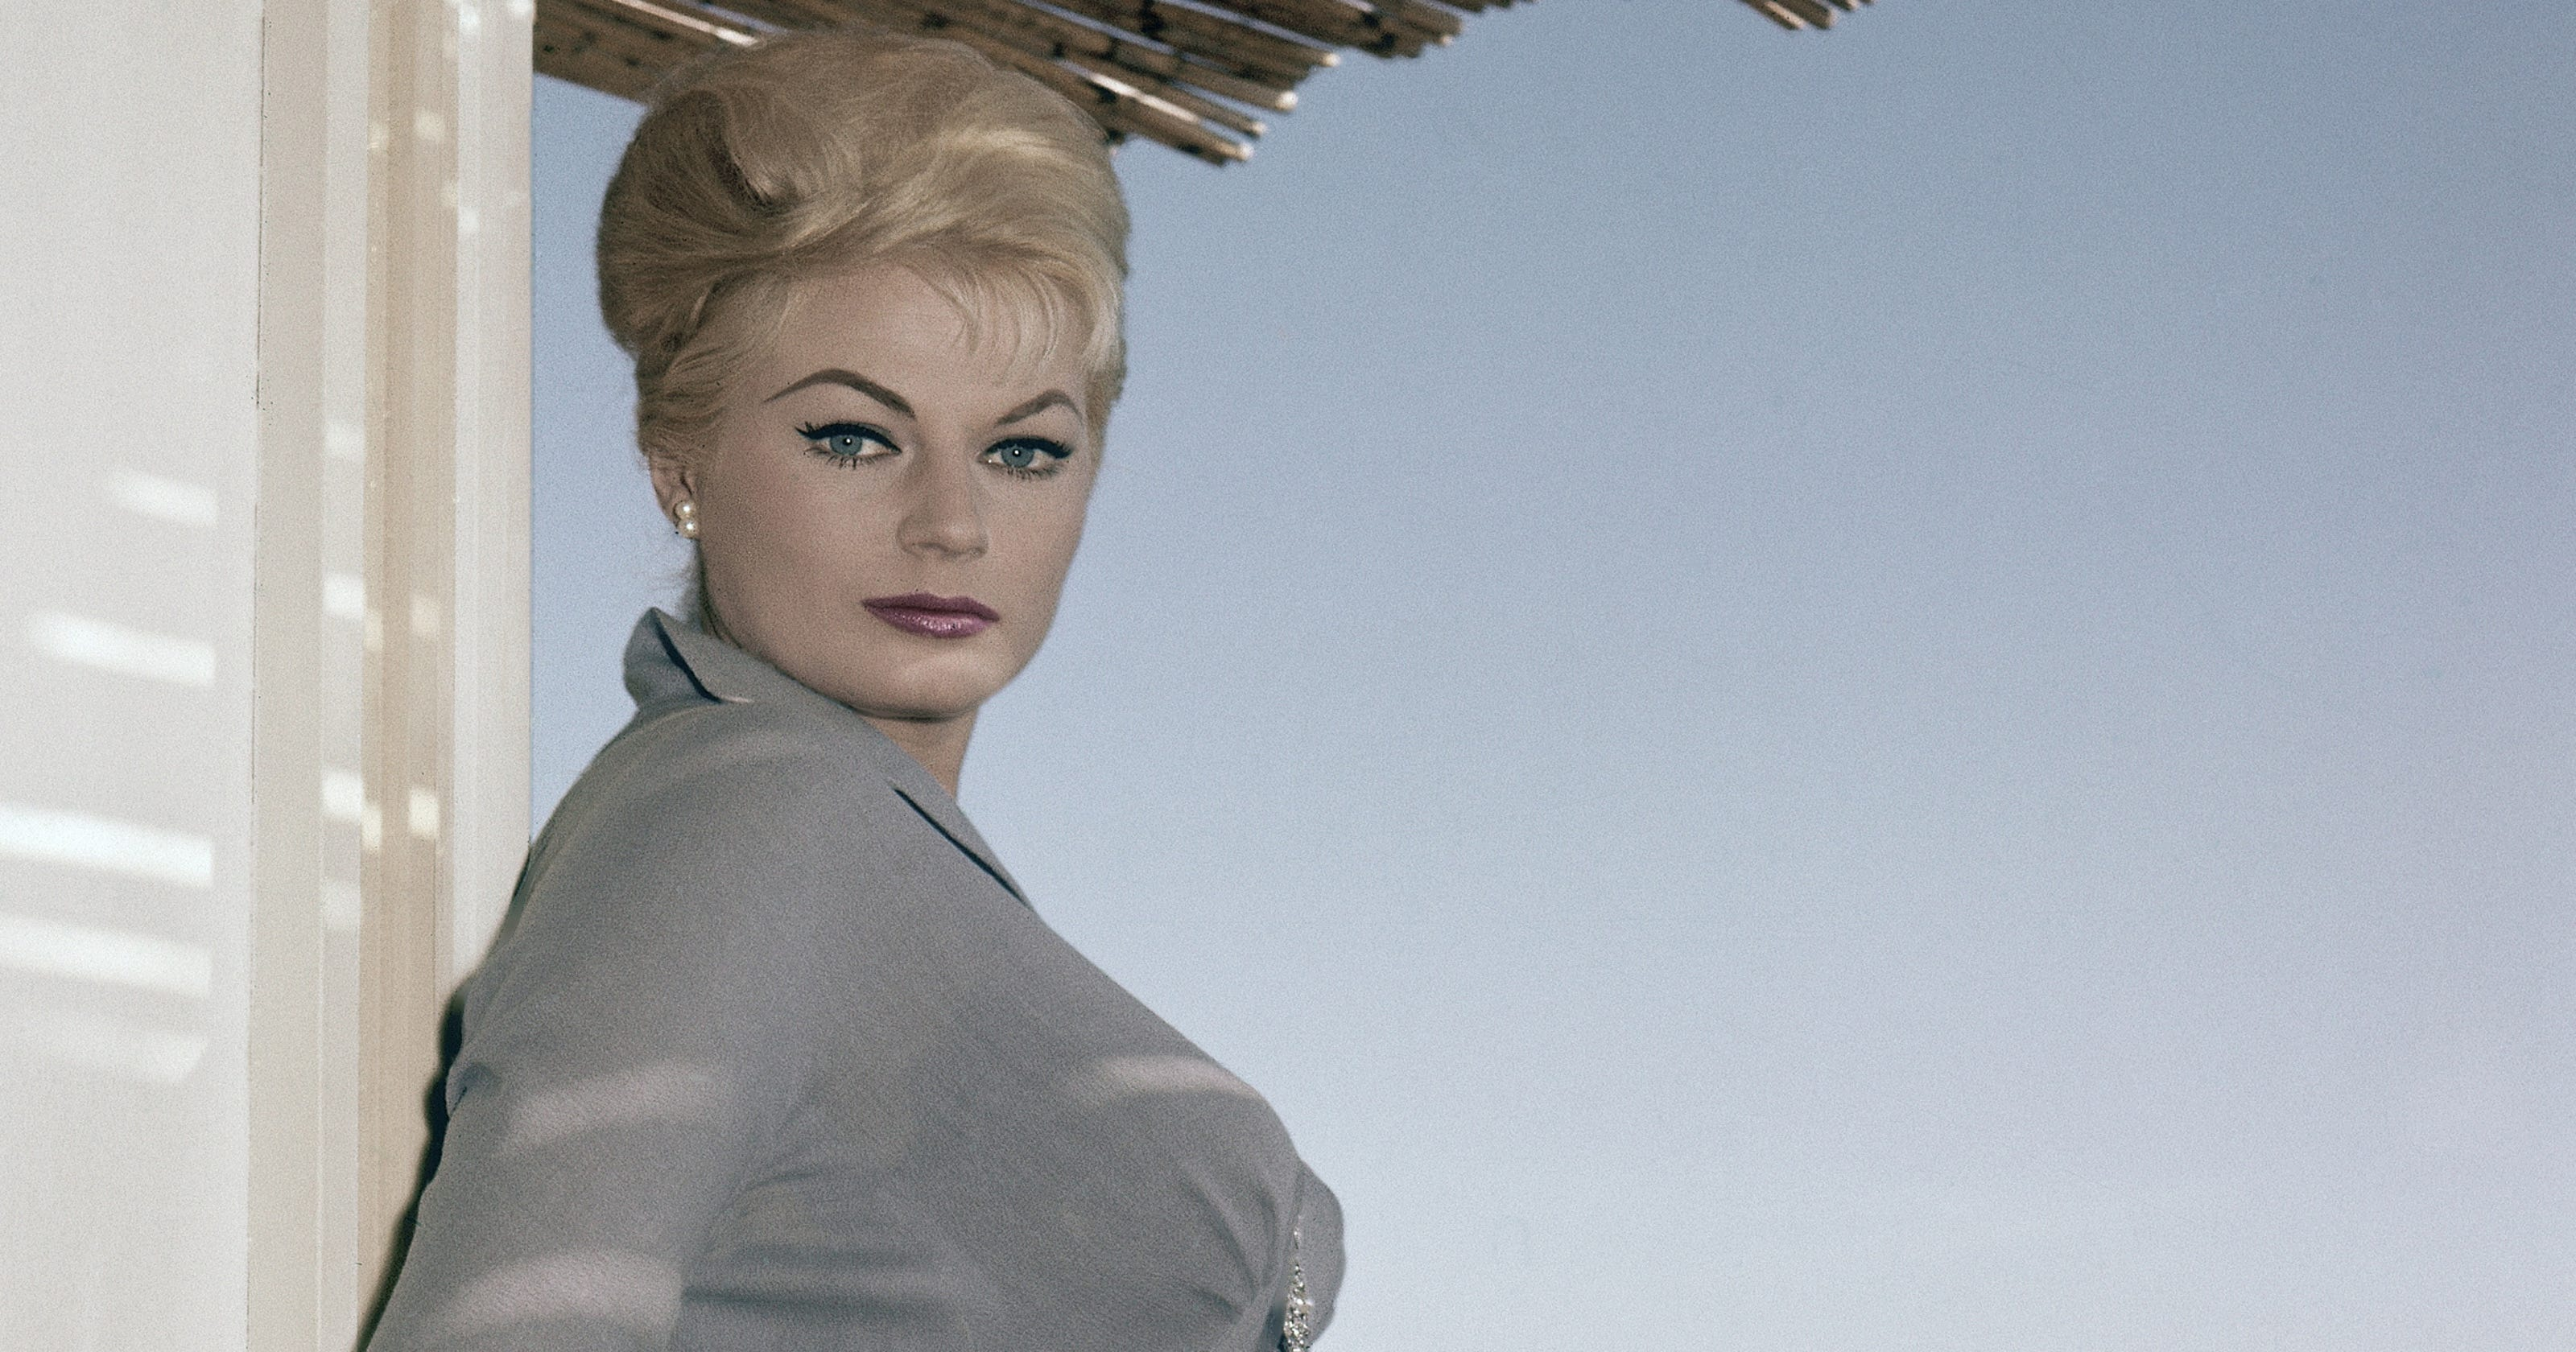 La Dolce Vita actress Anita Ekberg dies at 83